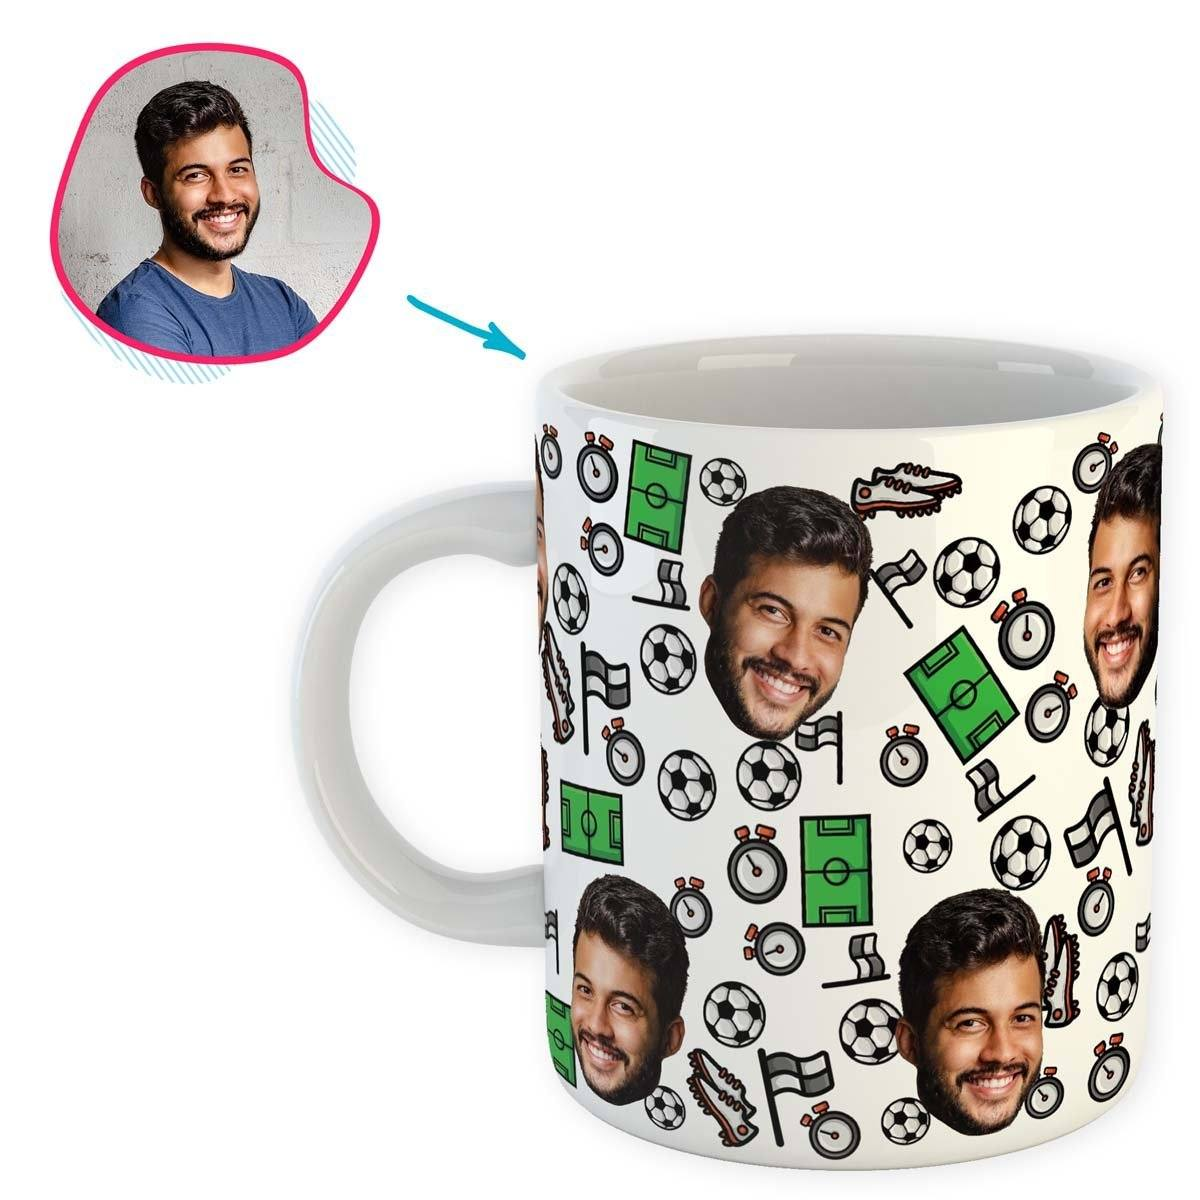 white Football mug personalized with photo of face printed on it